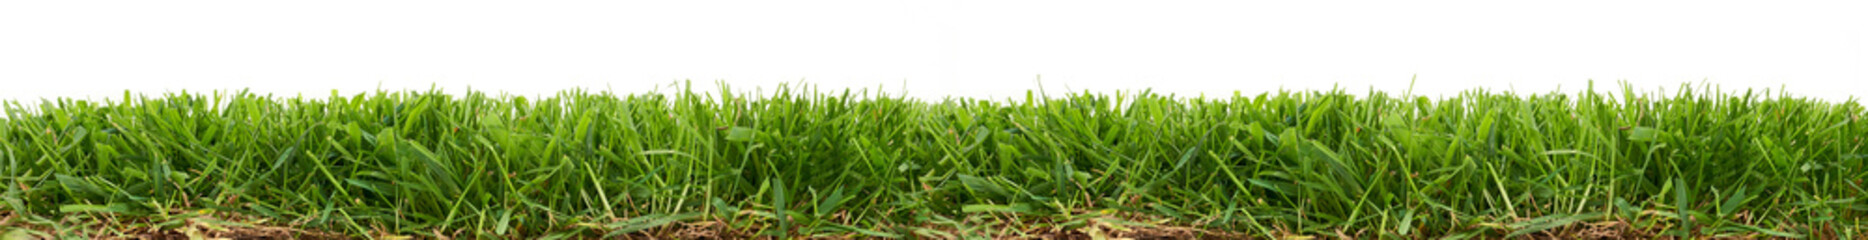 Fresh green grass isolated against a white background Fototapete